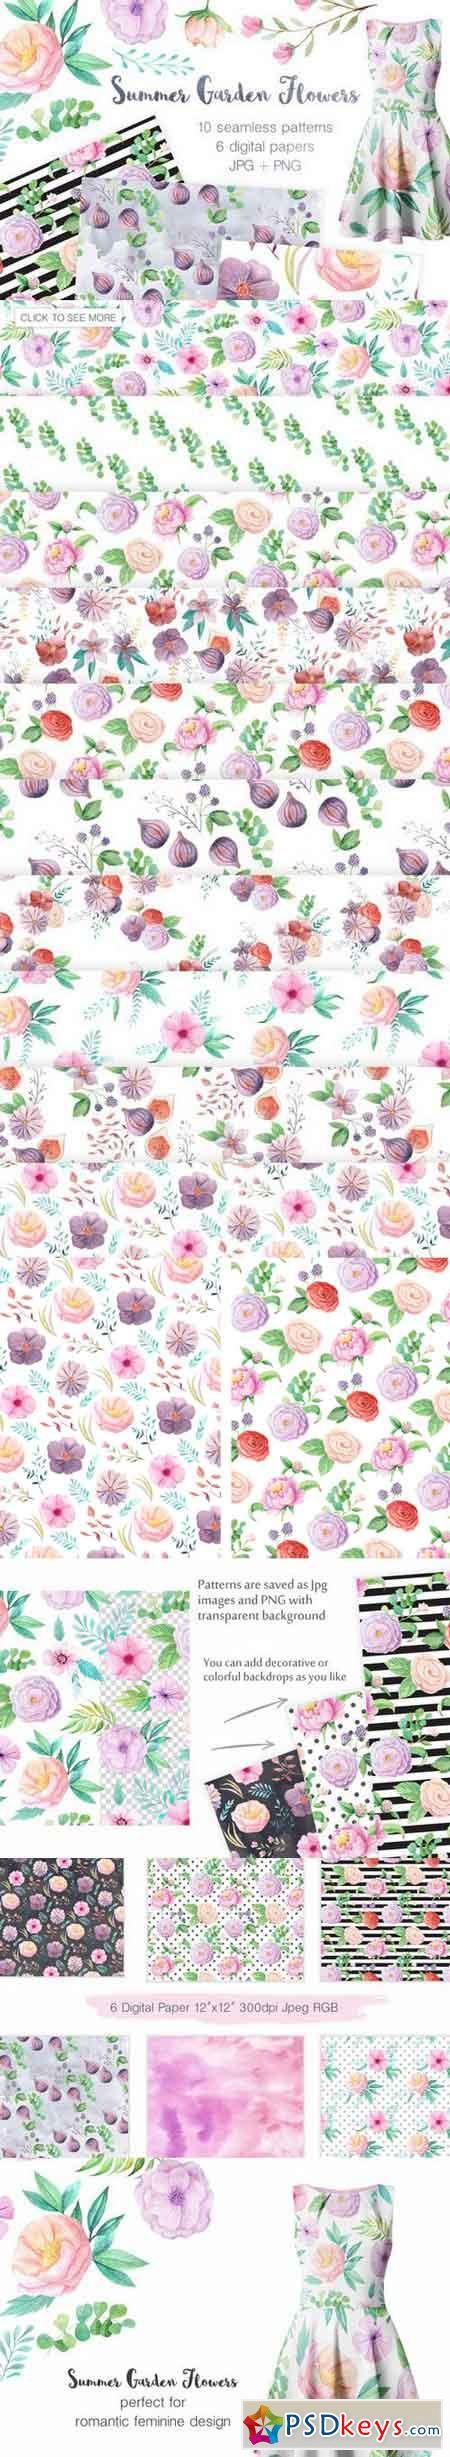 Summer Floral Seamless Patterns 689394